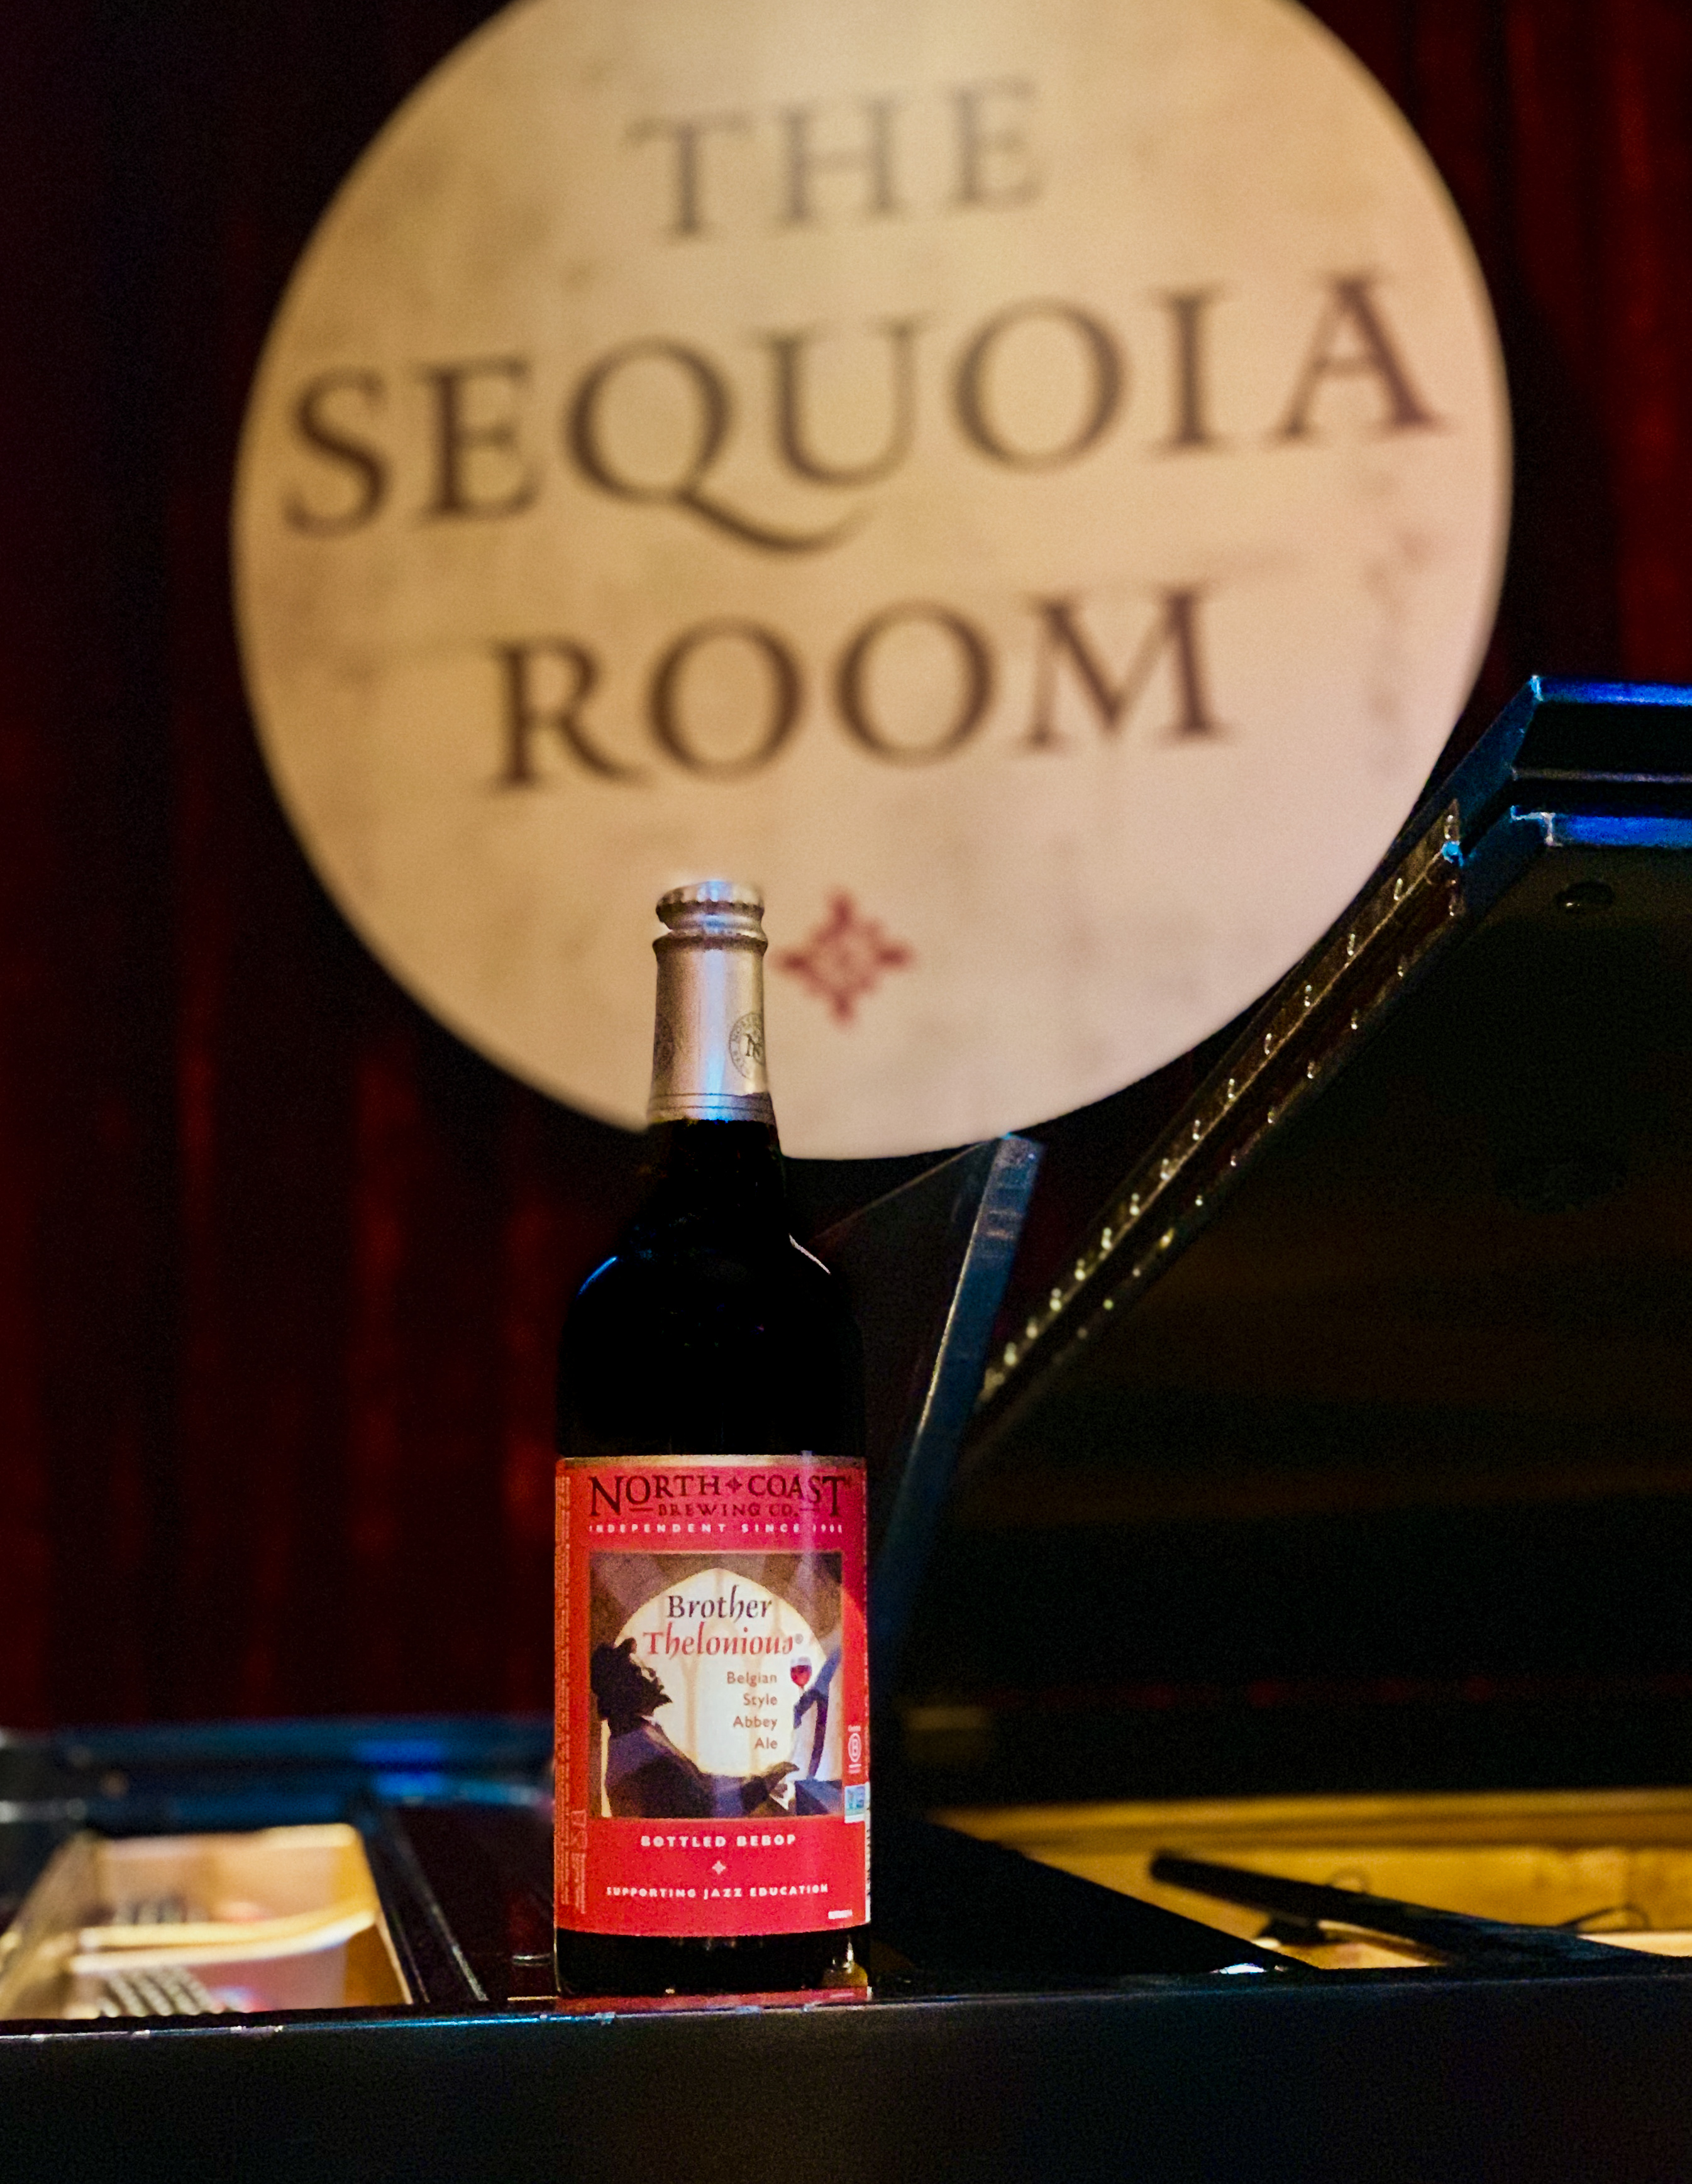 Brother Thelonious - Sequoia Room (image courtesy of North Coast Brewing)